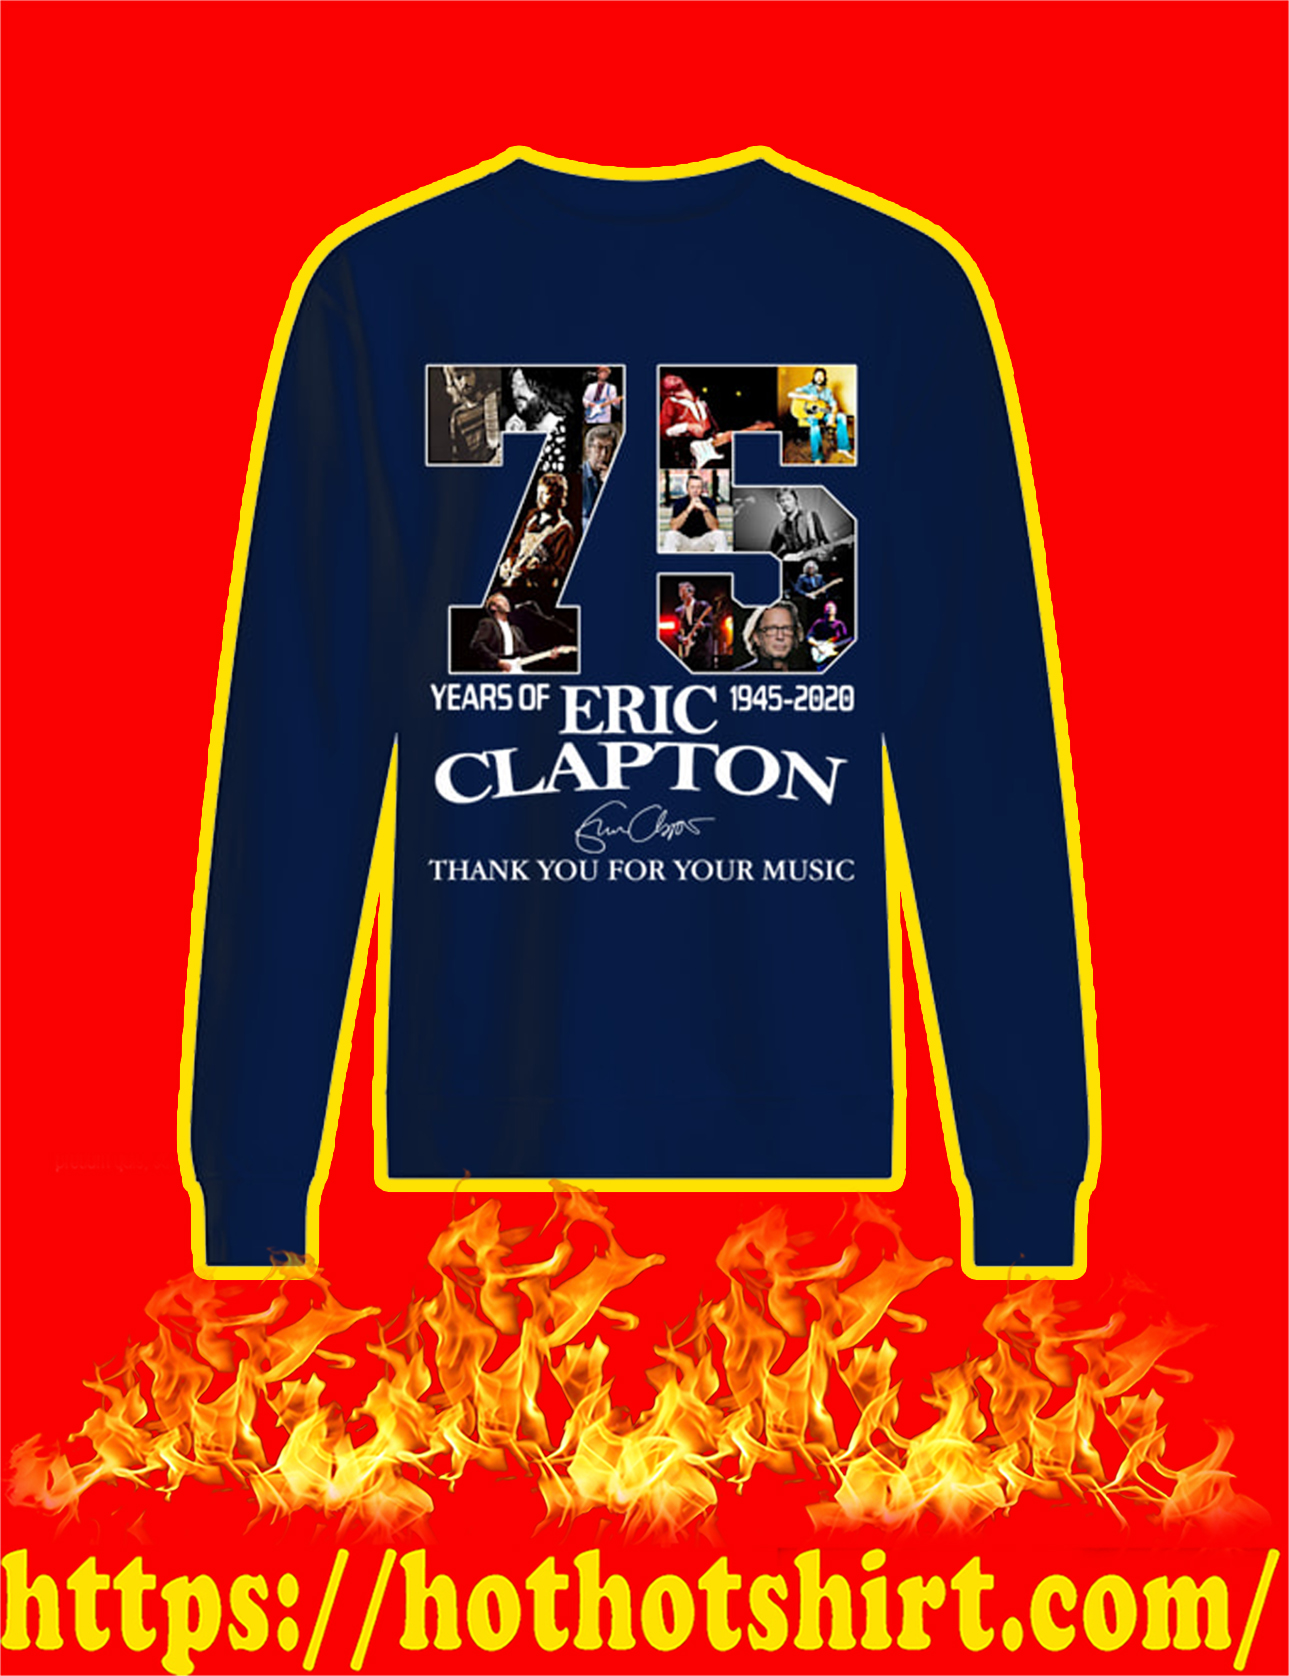 75 Years Of Eric Clapton Thank You For Your Music Sweatshirt